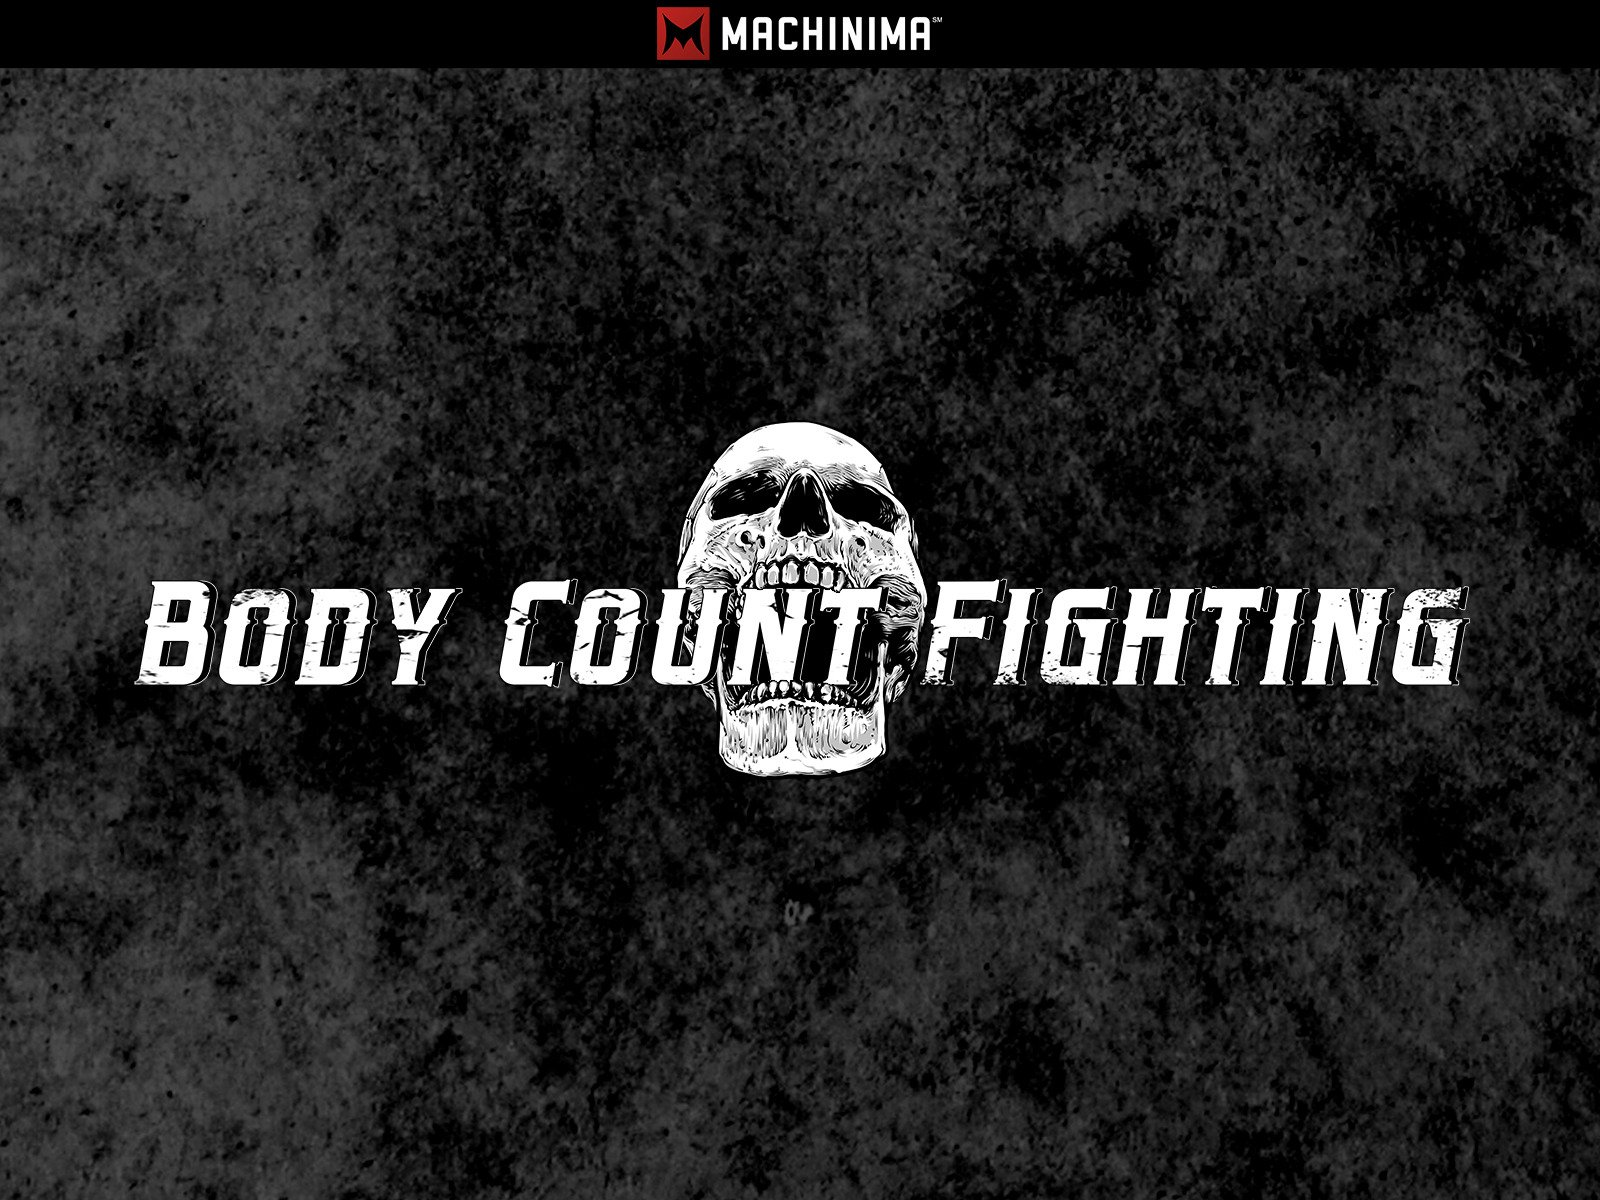 Body Count Fighting - Season 1